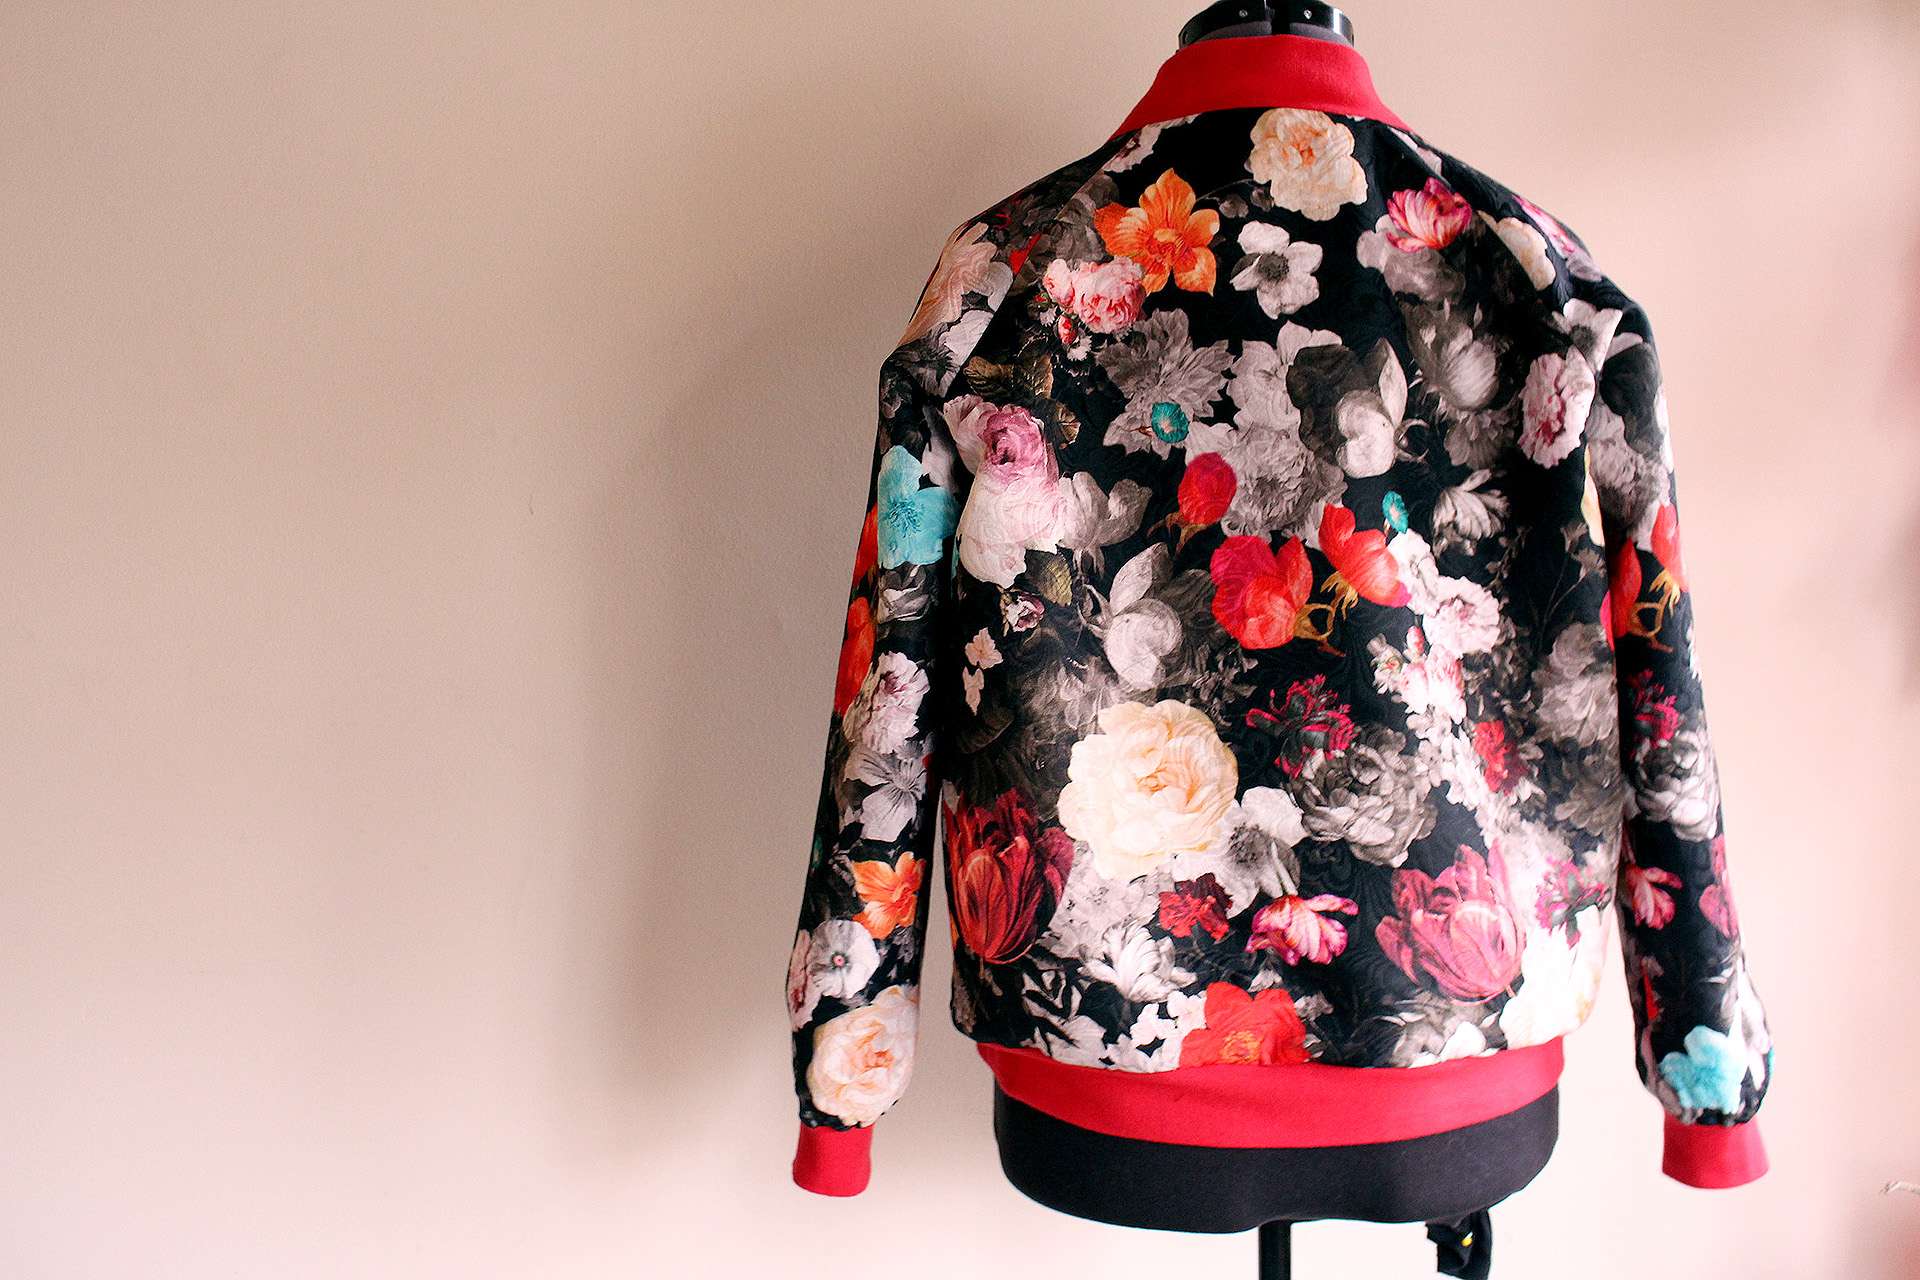 Back view of the completed Rockabilly Bomber sewn with the Rigel Bomber pattern | @VintageonTap